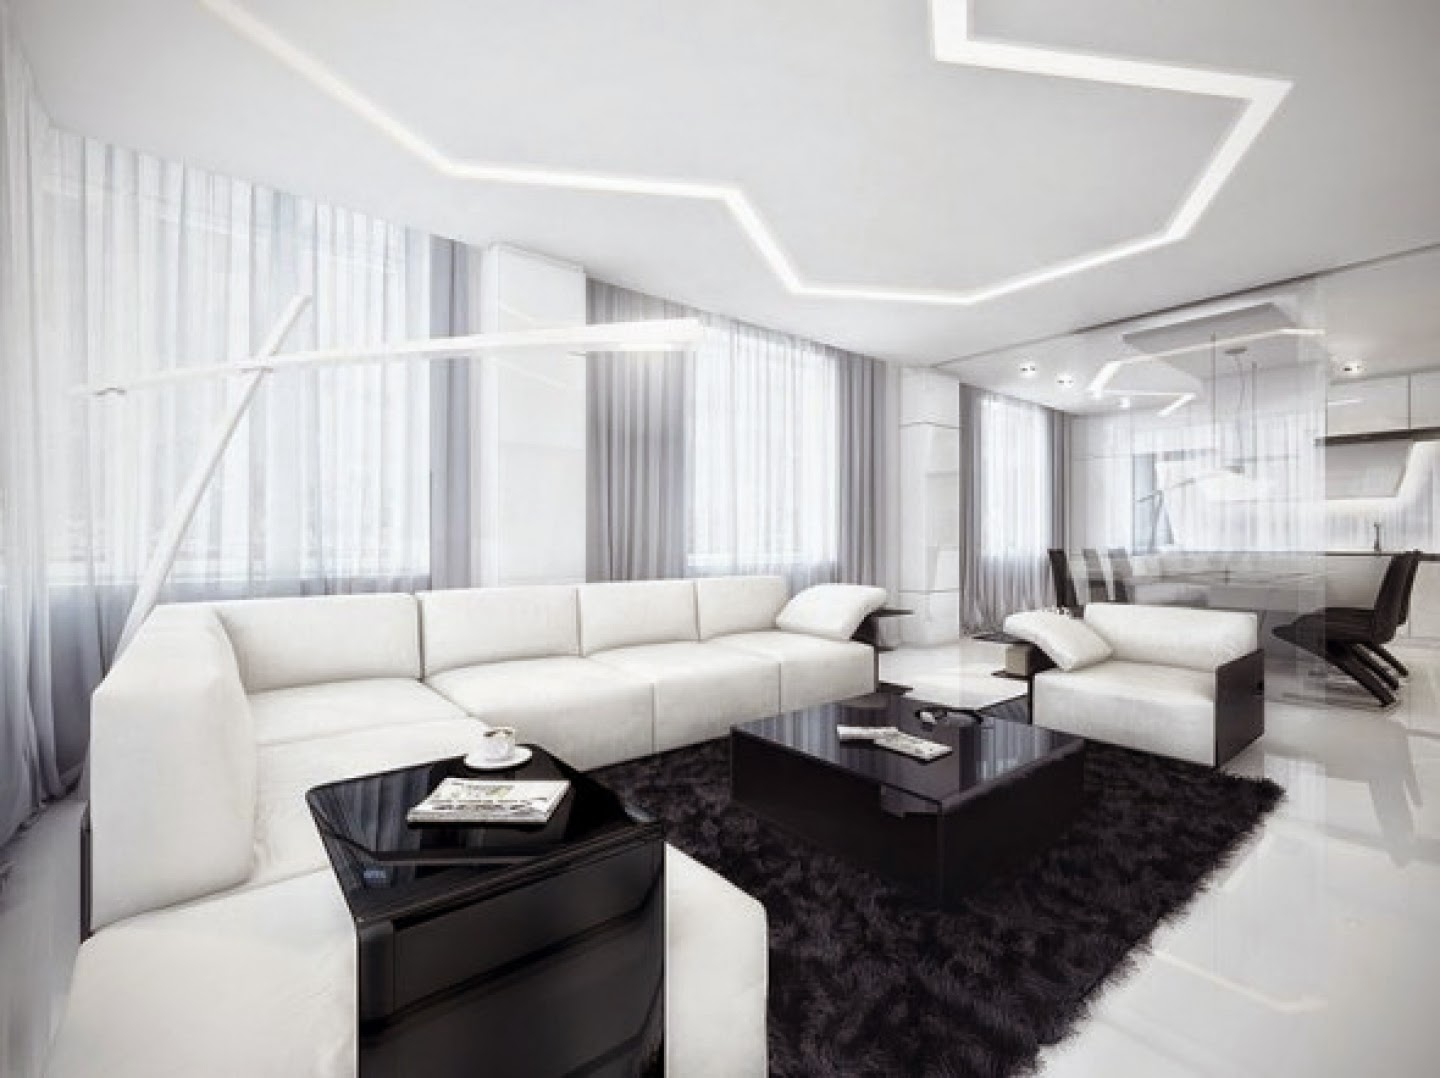 First Black And White Interior Design For Your Living Room Can Be Lied Through The Wall Paint Color Then Combined With Furniture